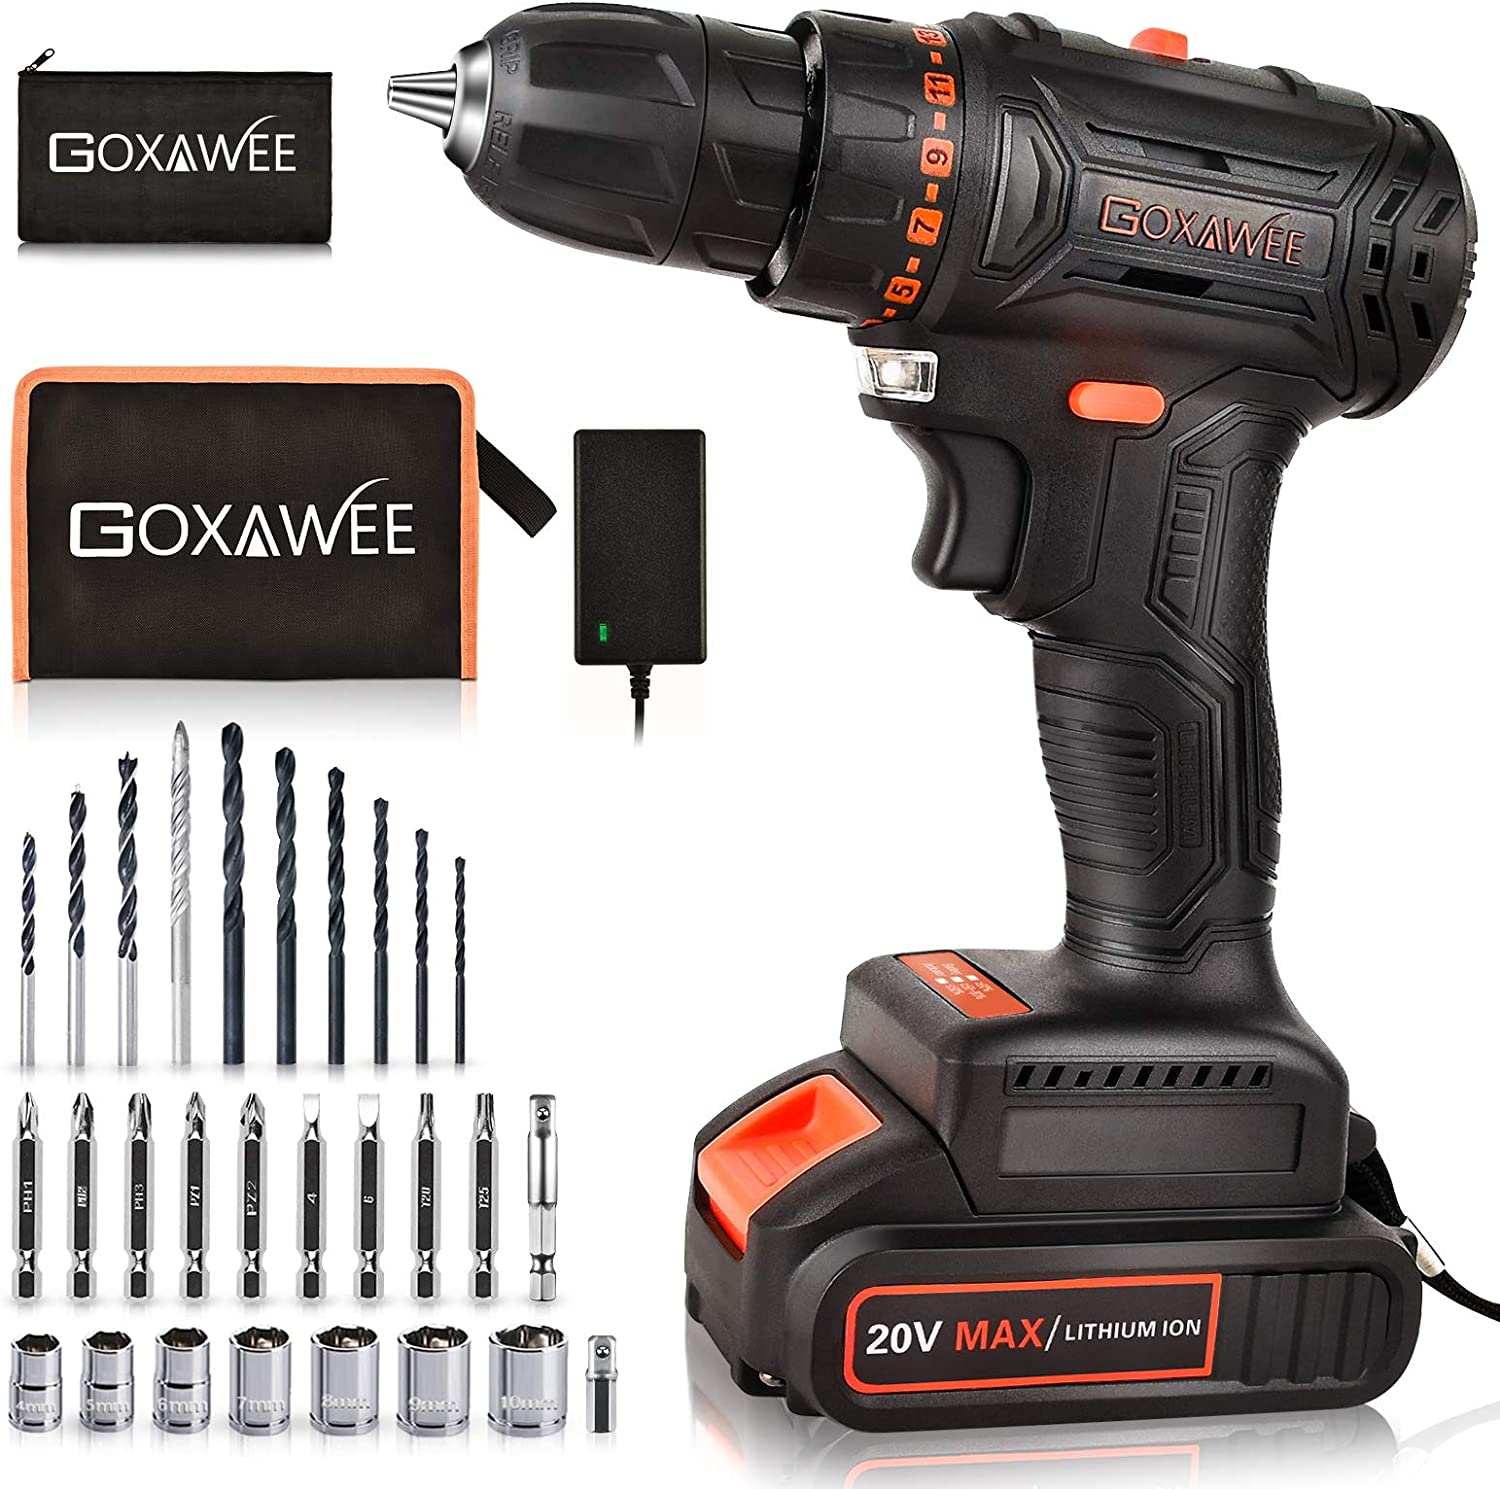 20V Cordless Drill with Brushless Motor - GOXAWEE Electric Screw Driver Set 33pcs Set with Nice Tool Bag (High Torque, 2-Speed, 10mm Automatic Chuck) for Home Improvement & DIY Project